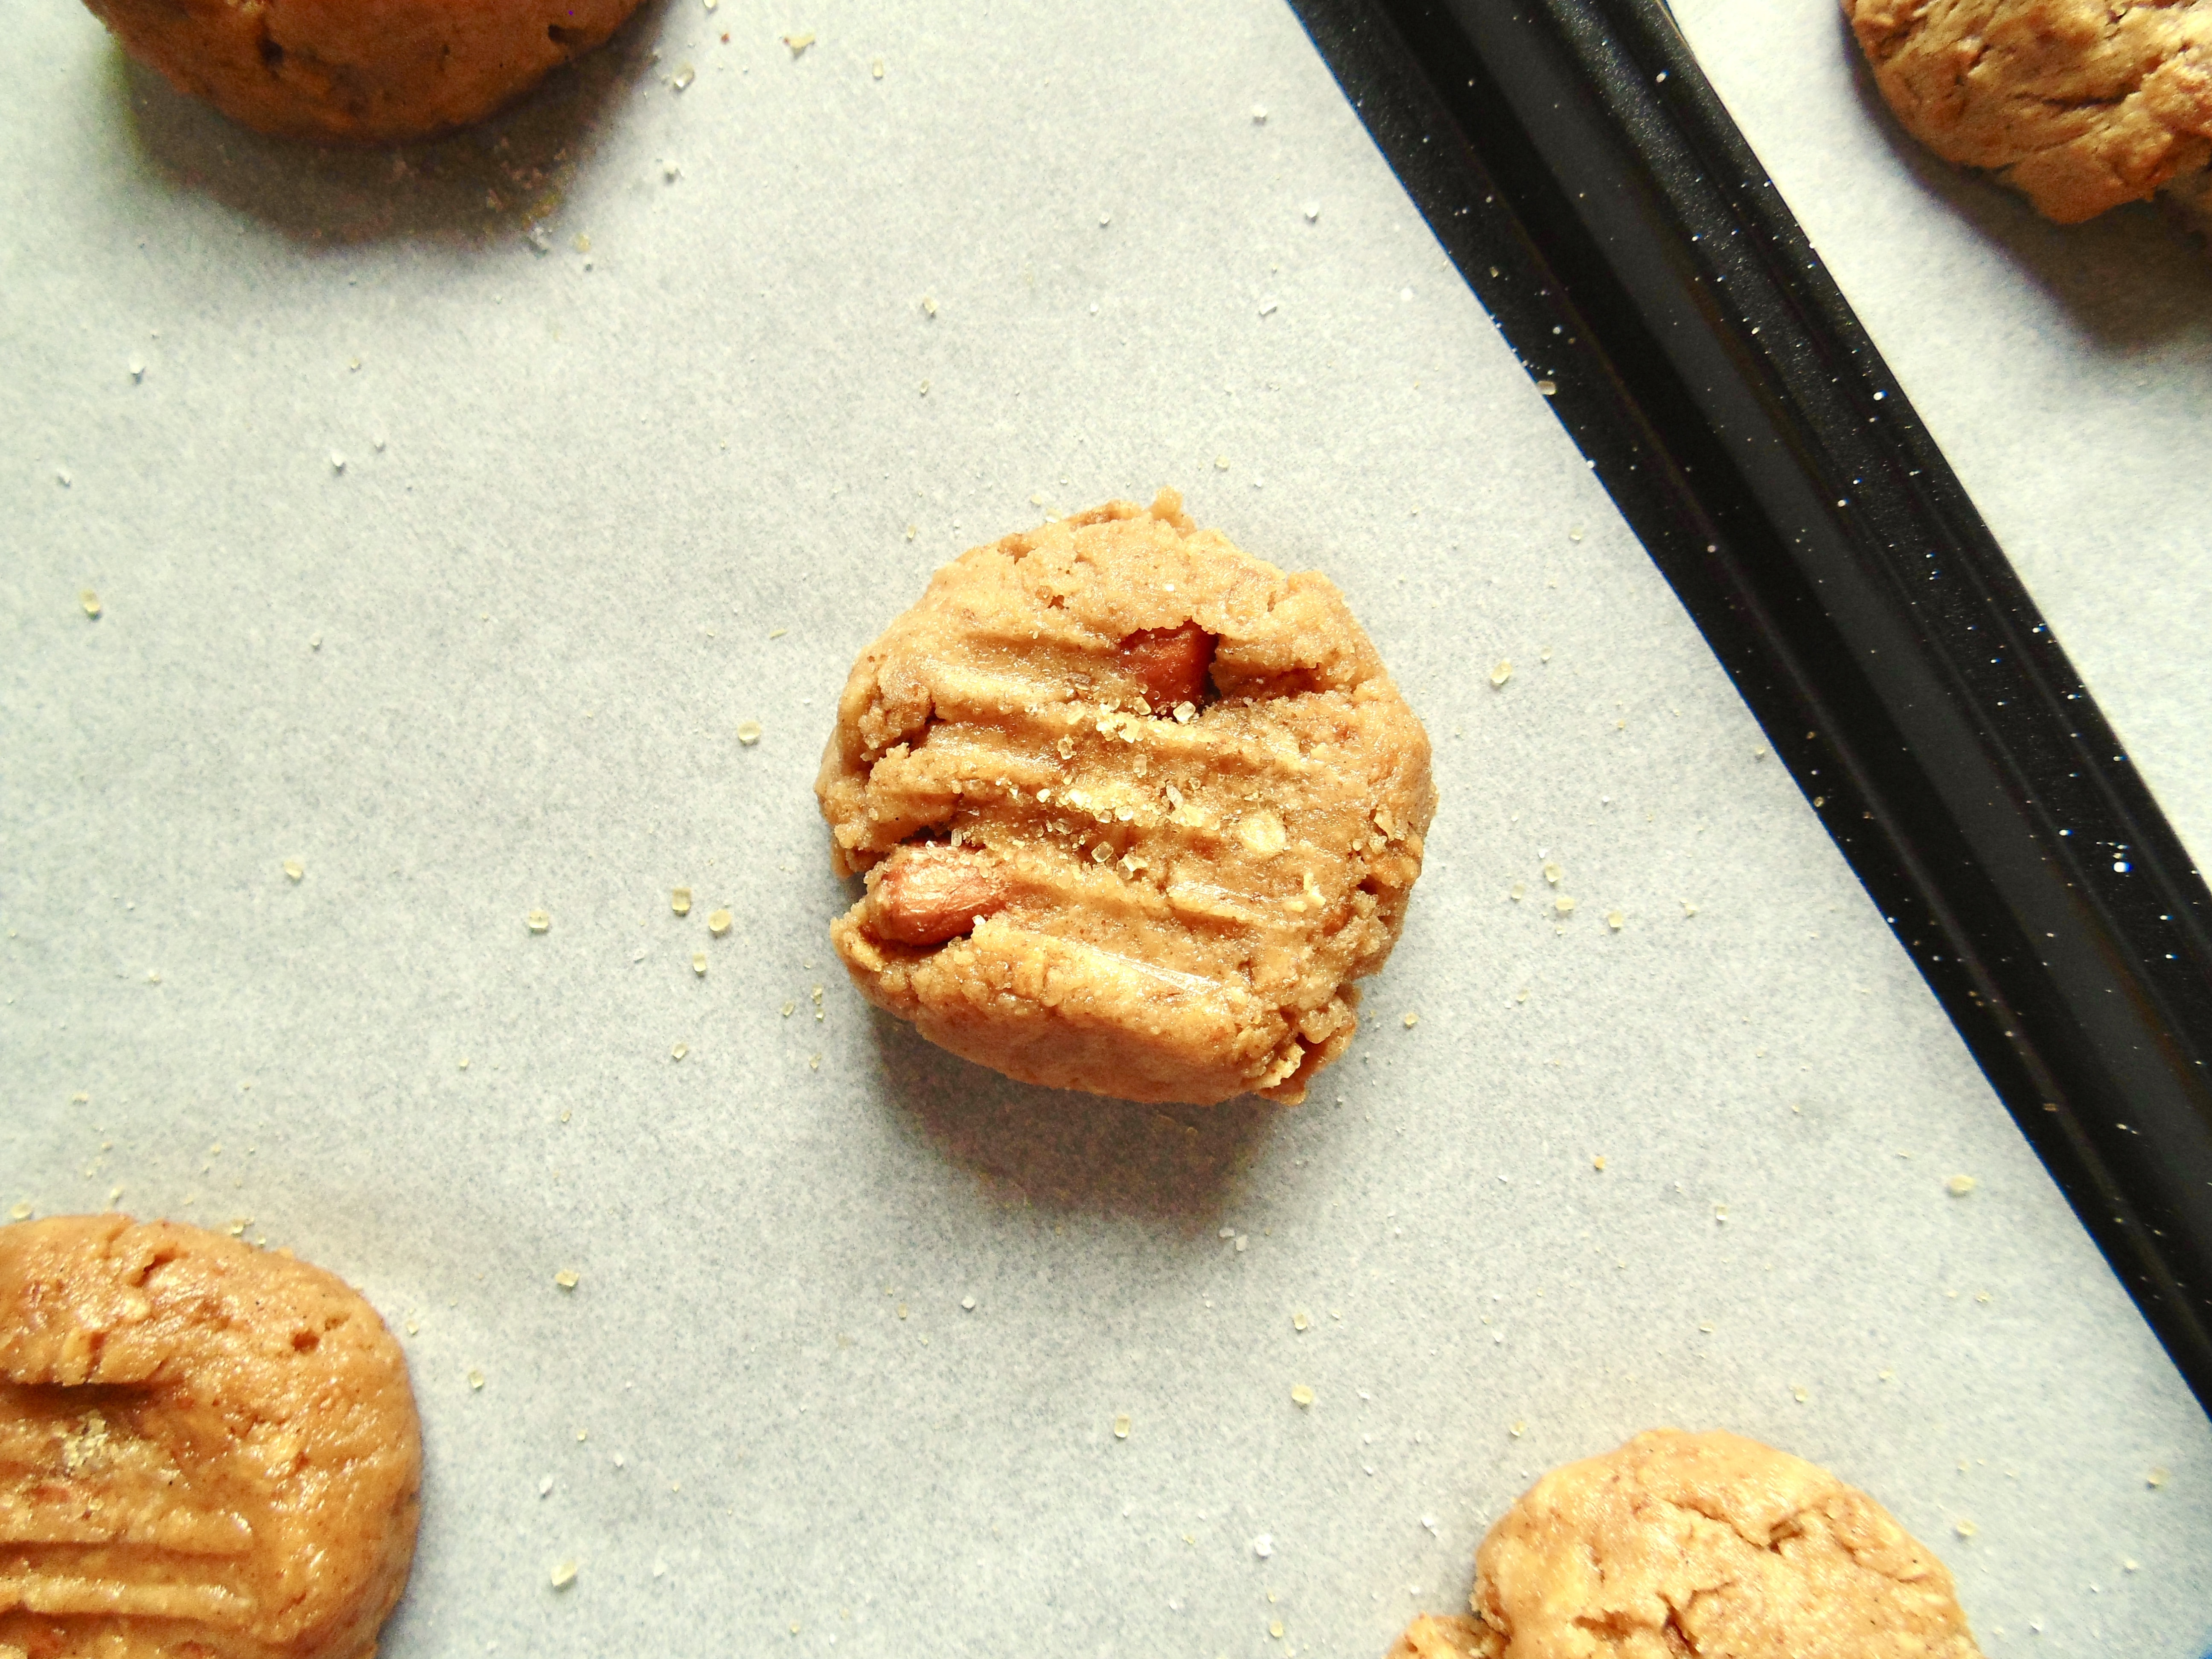 Flourless Salted Peanut Butter Crunch Cookies